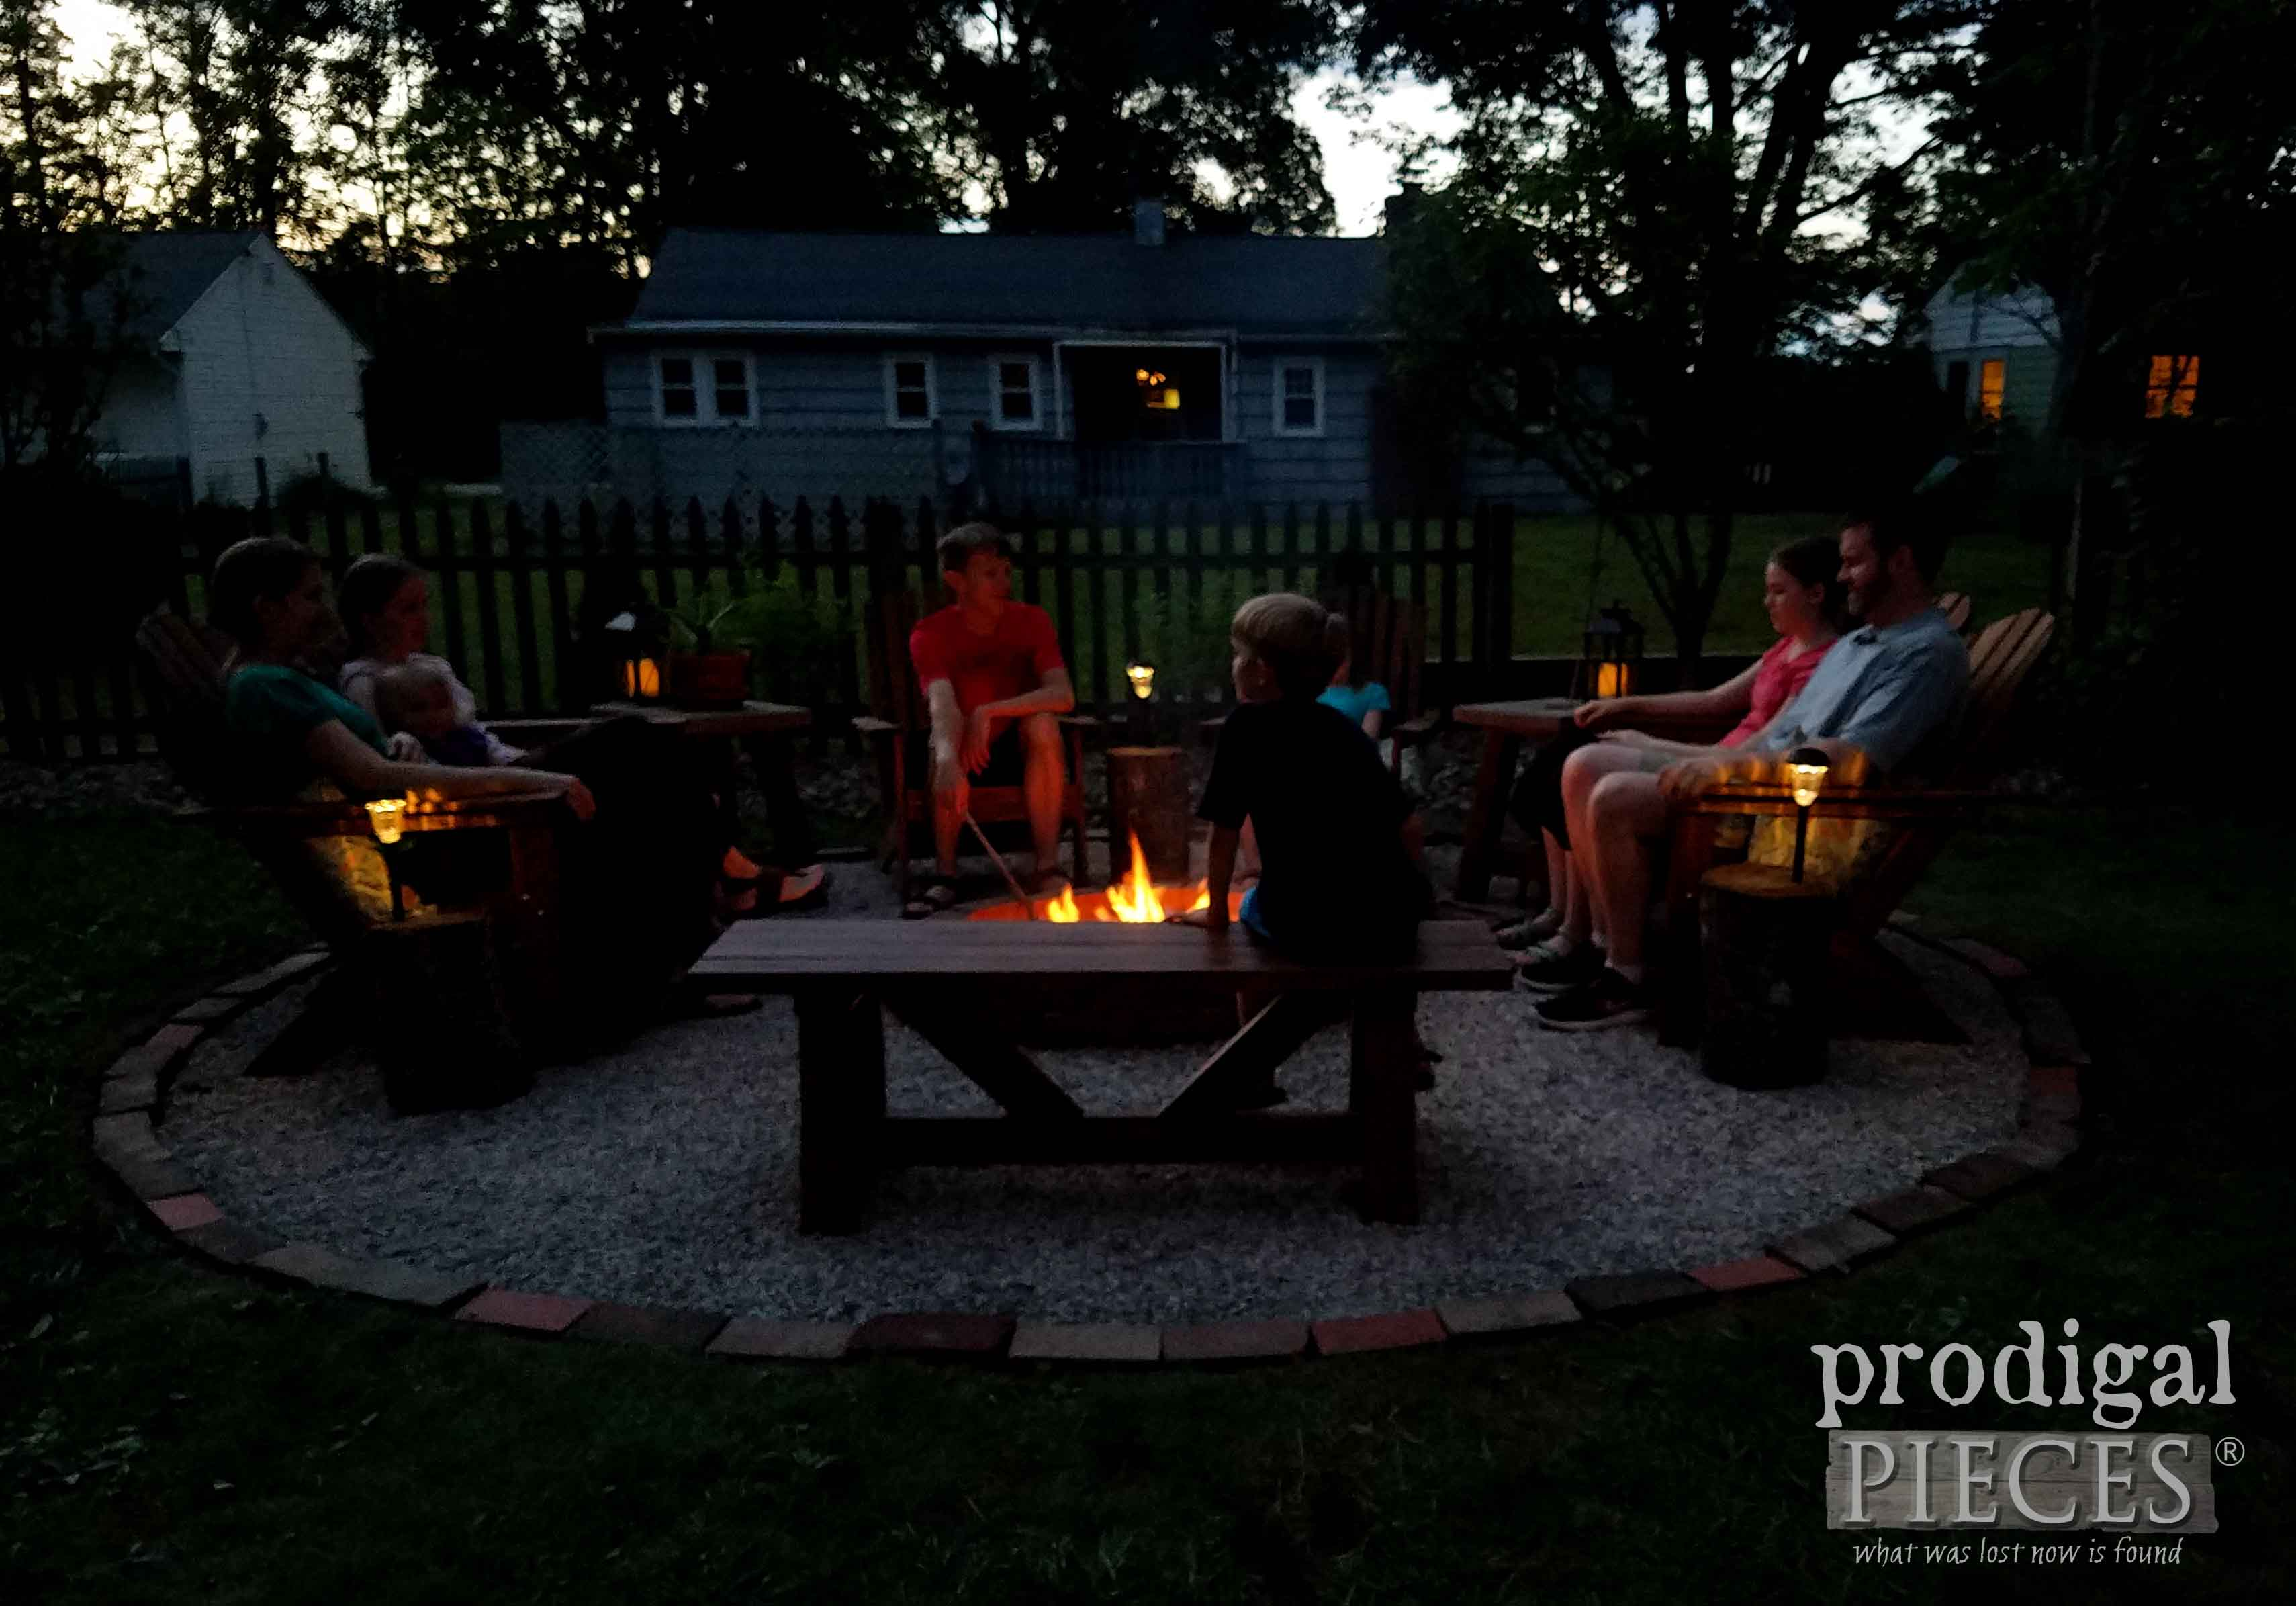 Family Sitting Fireside at DIY Fire Pit by Prodigal Pieces | prodigalpieces.com